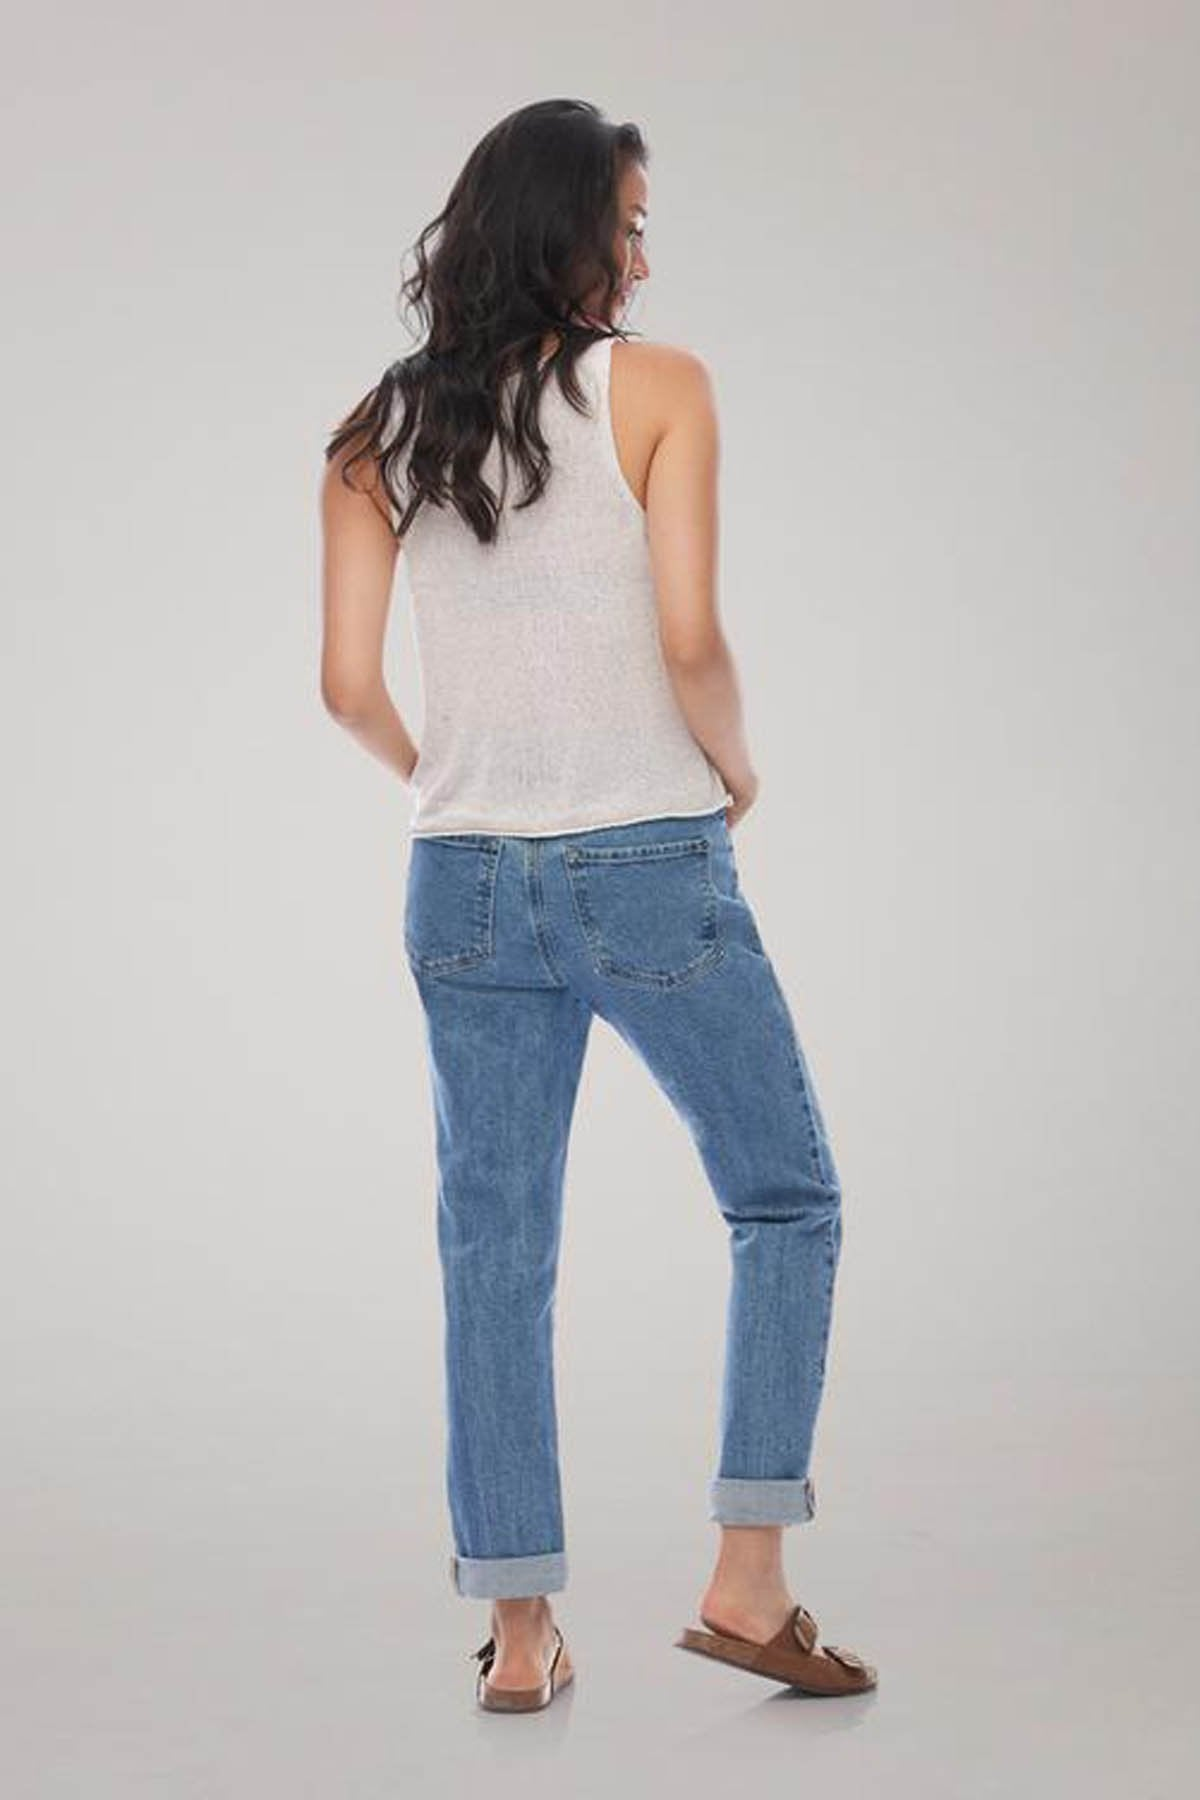 MALIA Relaxed Slim Yoga Jean, back view, Second Denim, Lake House, loose fit, relaxed, tapered leg, low rise, 27-29 inch inseam, made in Canada